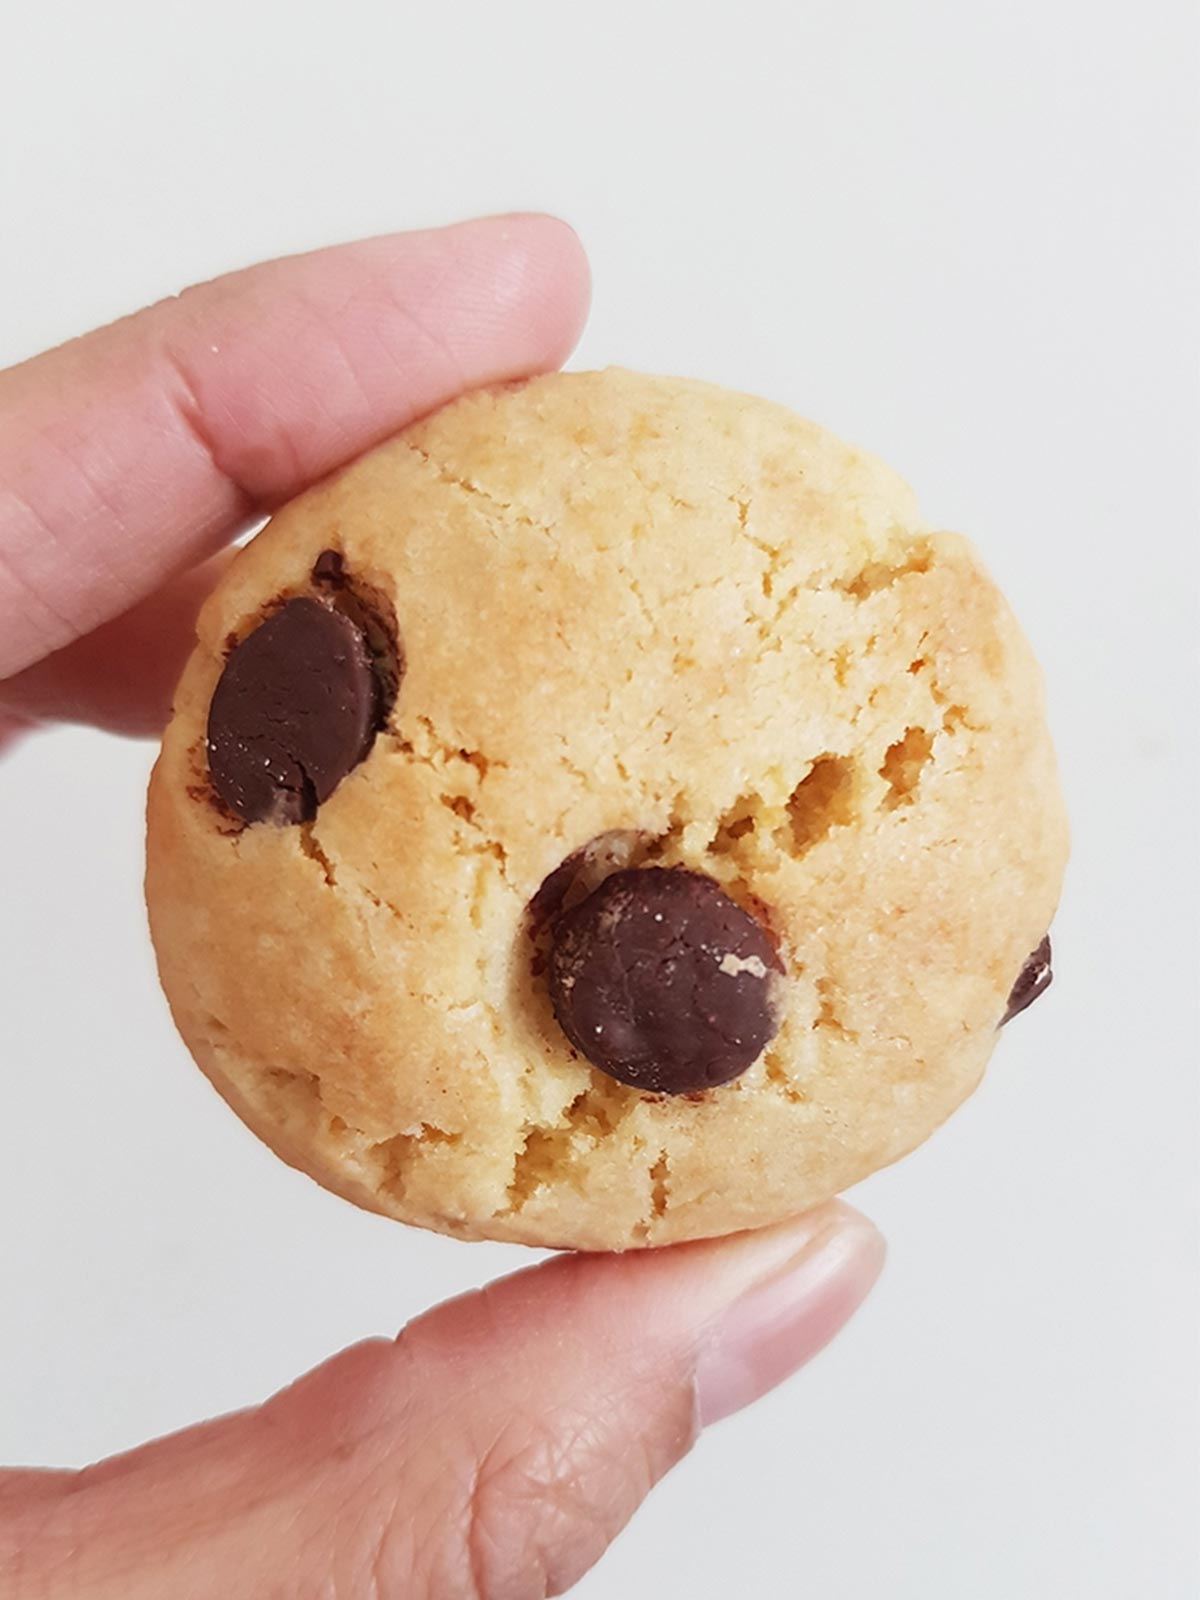 eggless chocolate chip cookies in hand